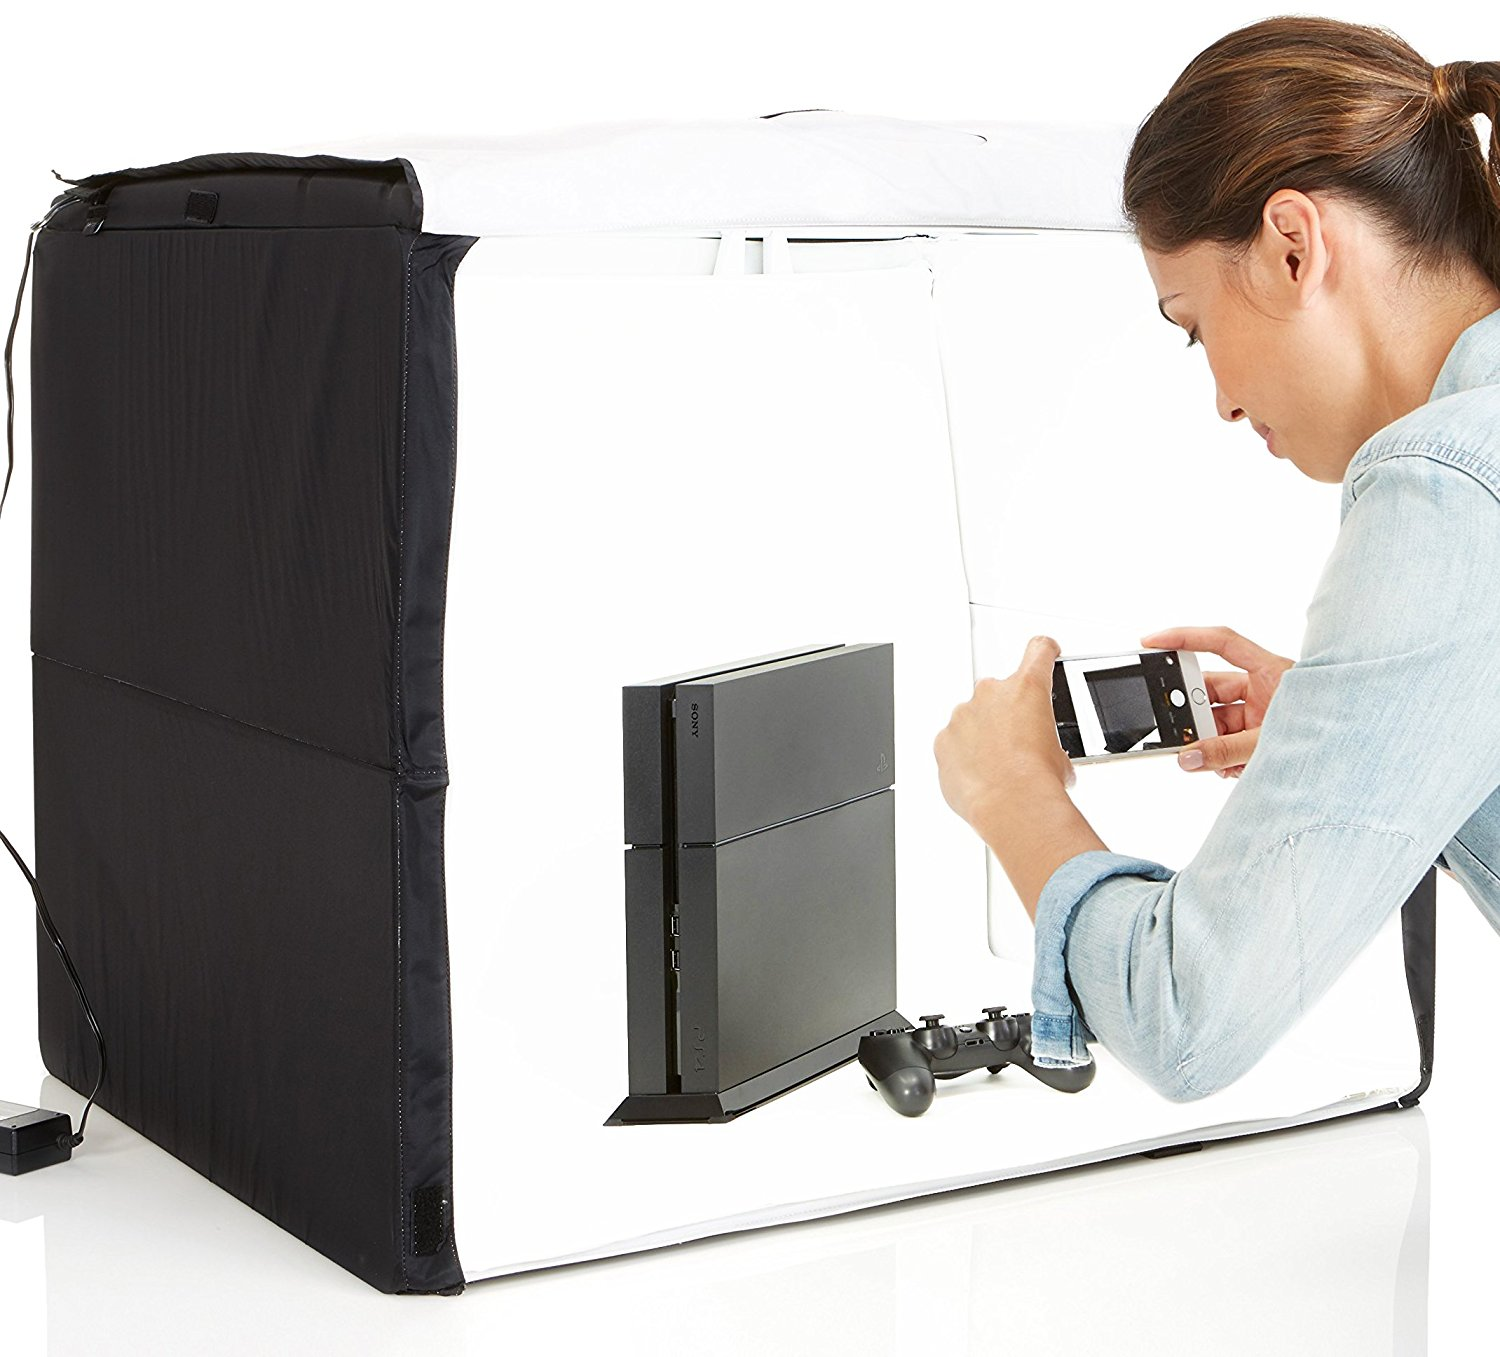 AmazonBasics Portable Photo Studio . (This image is from the Amazon site.)